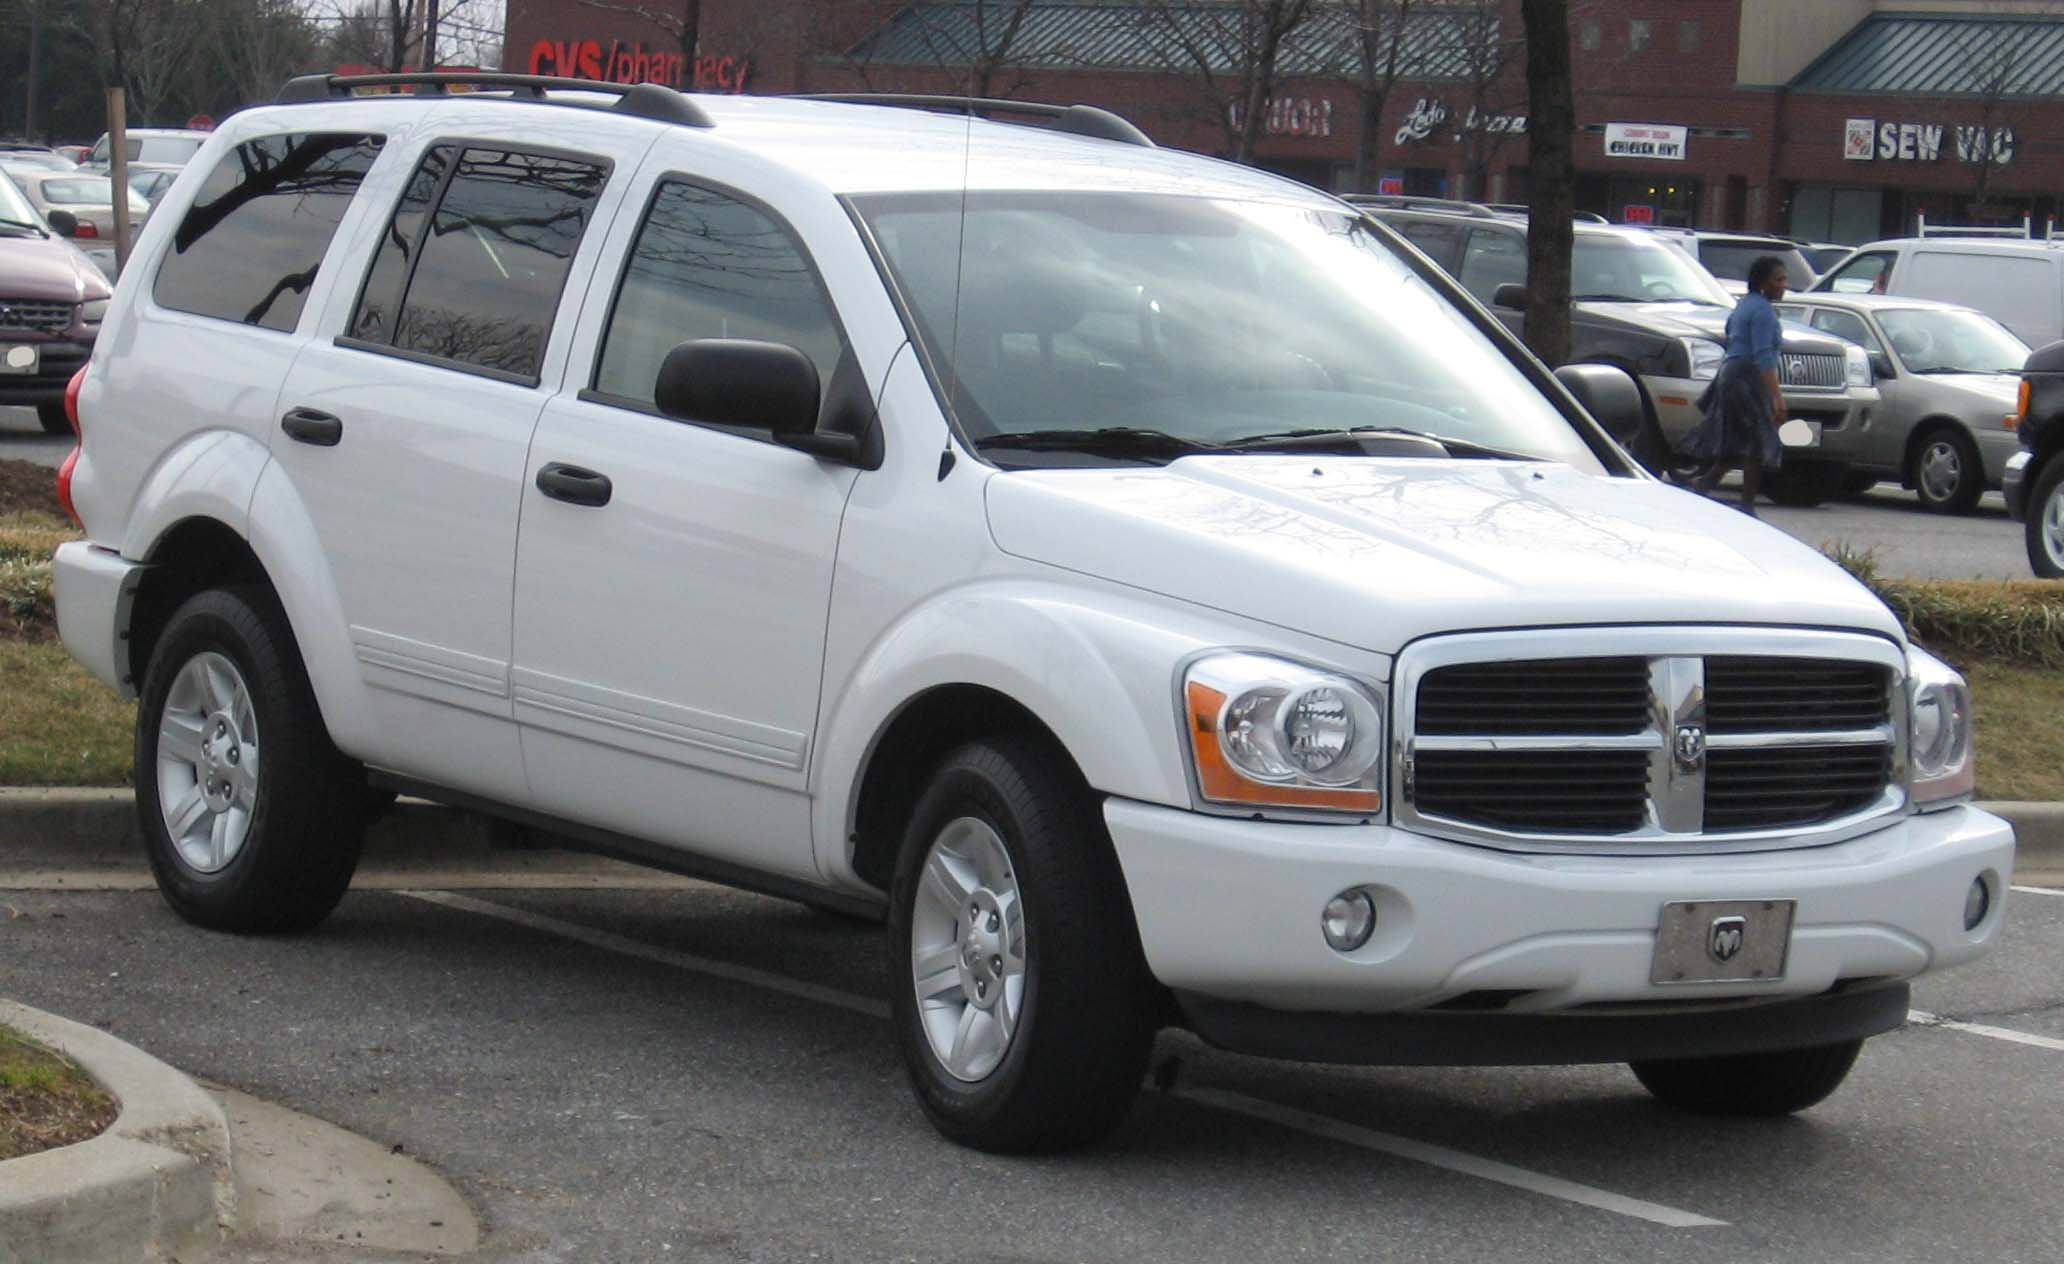 2006 Dodge Durango #5 Photos, Informations, Articles ... on